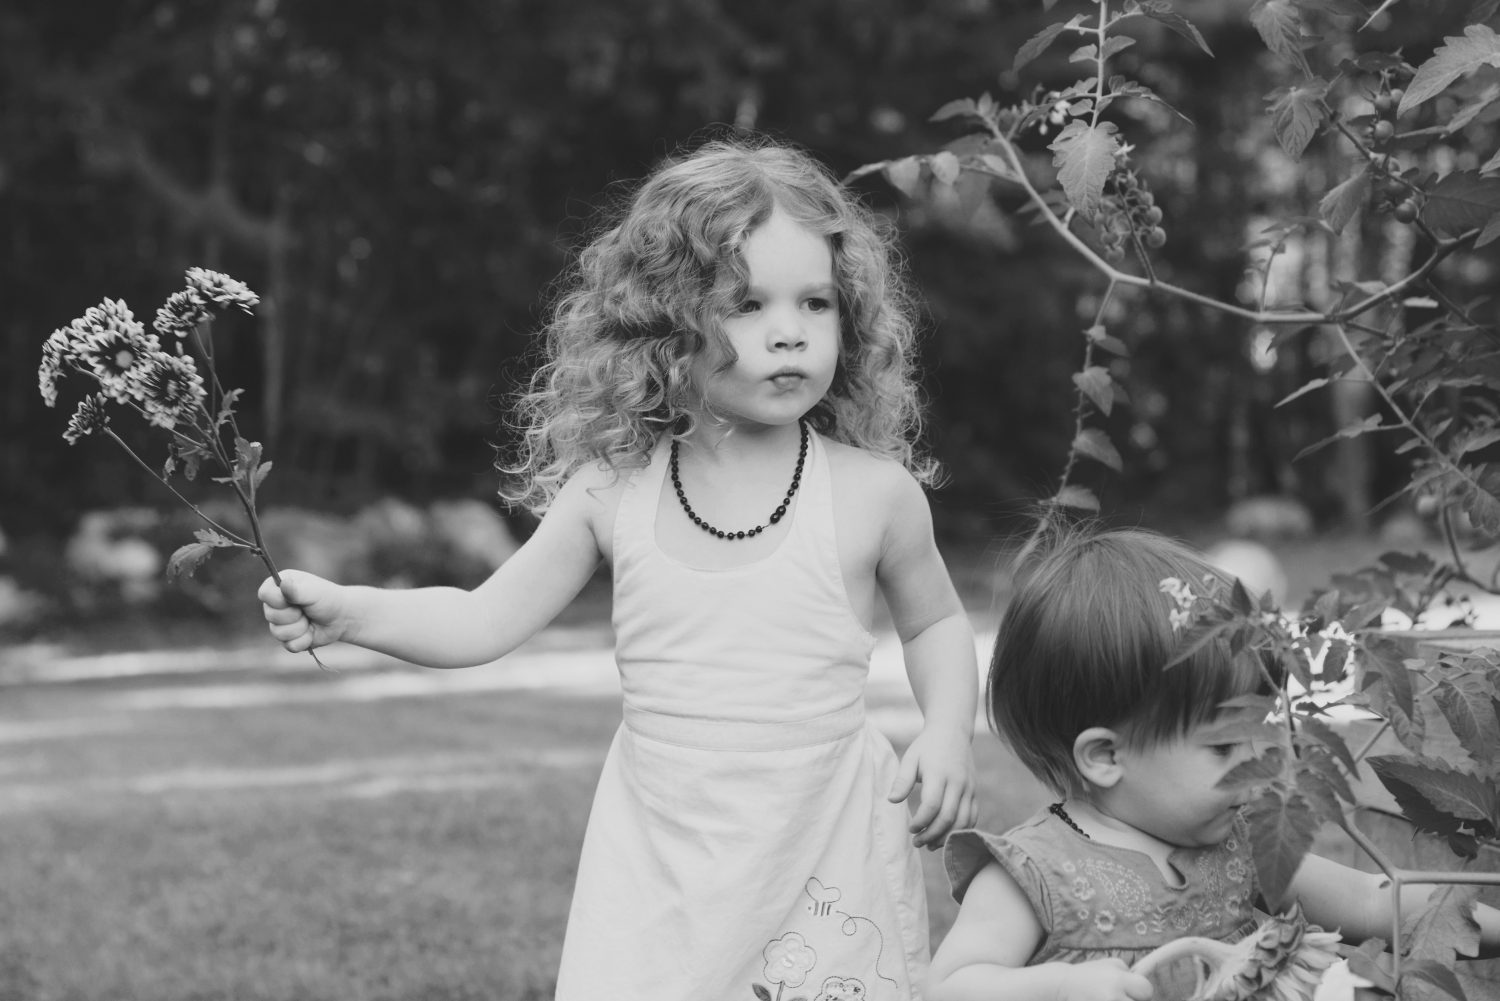 black and white photo of young girl gazing into the distance holding a bouquet of flowers